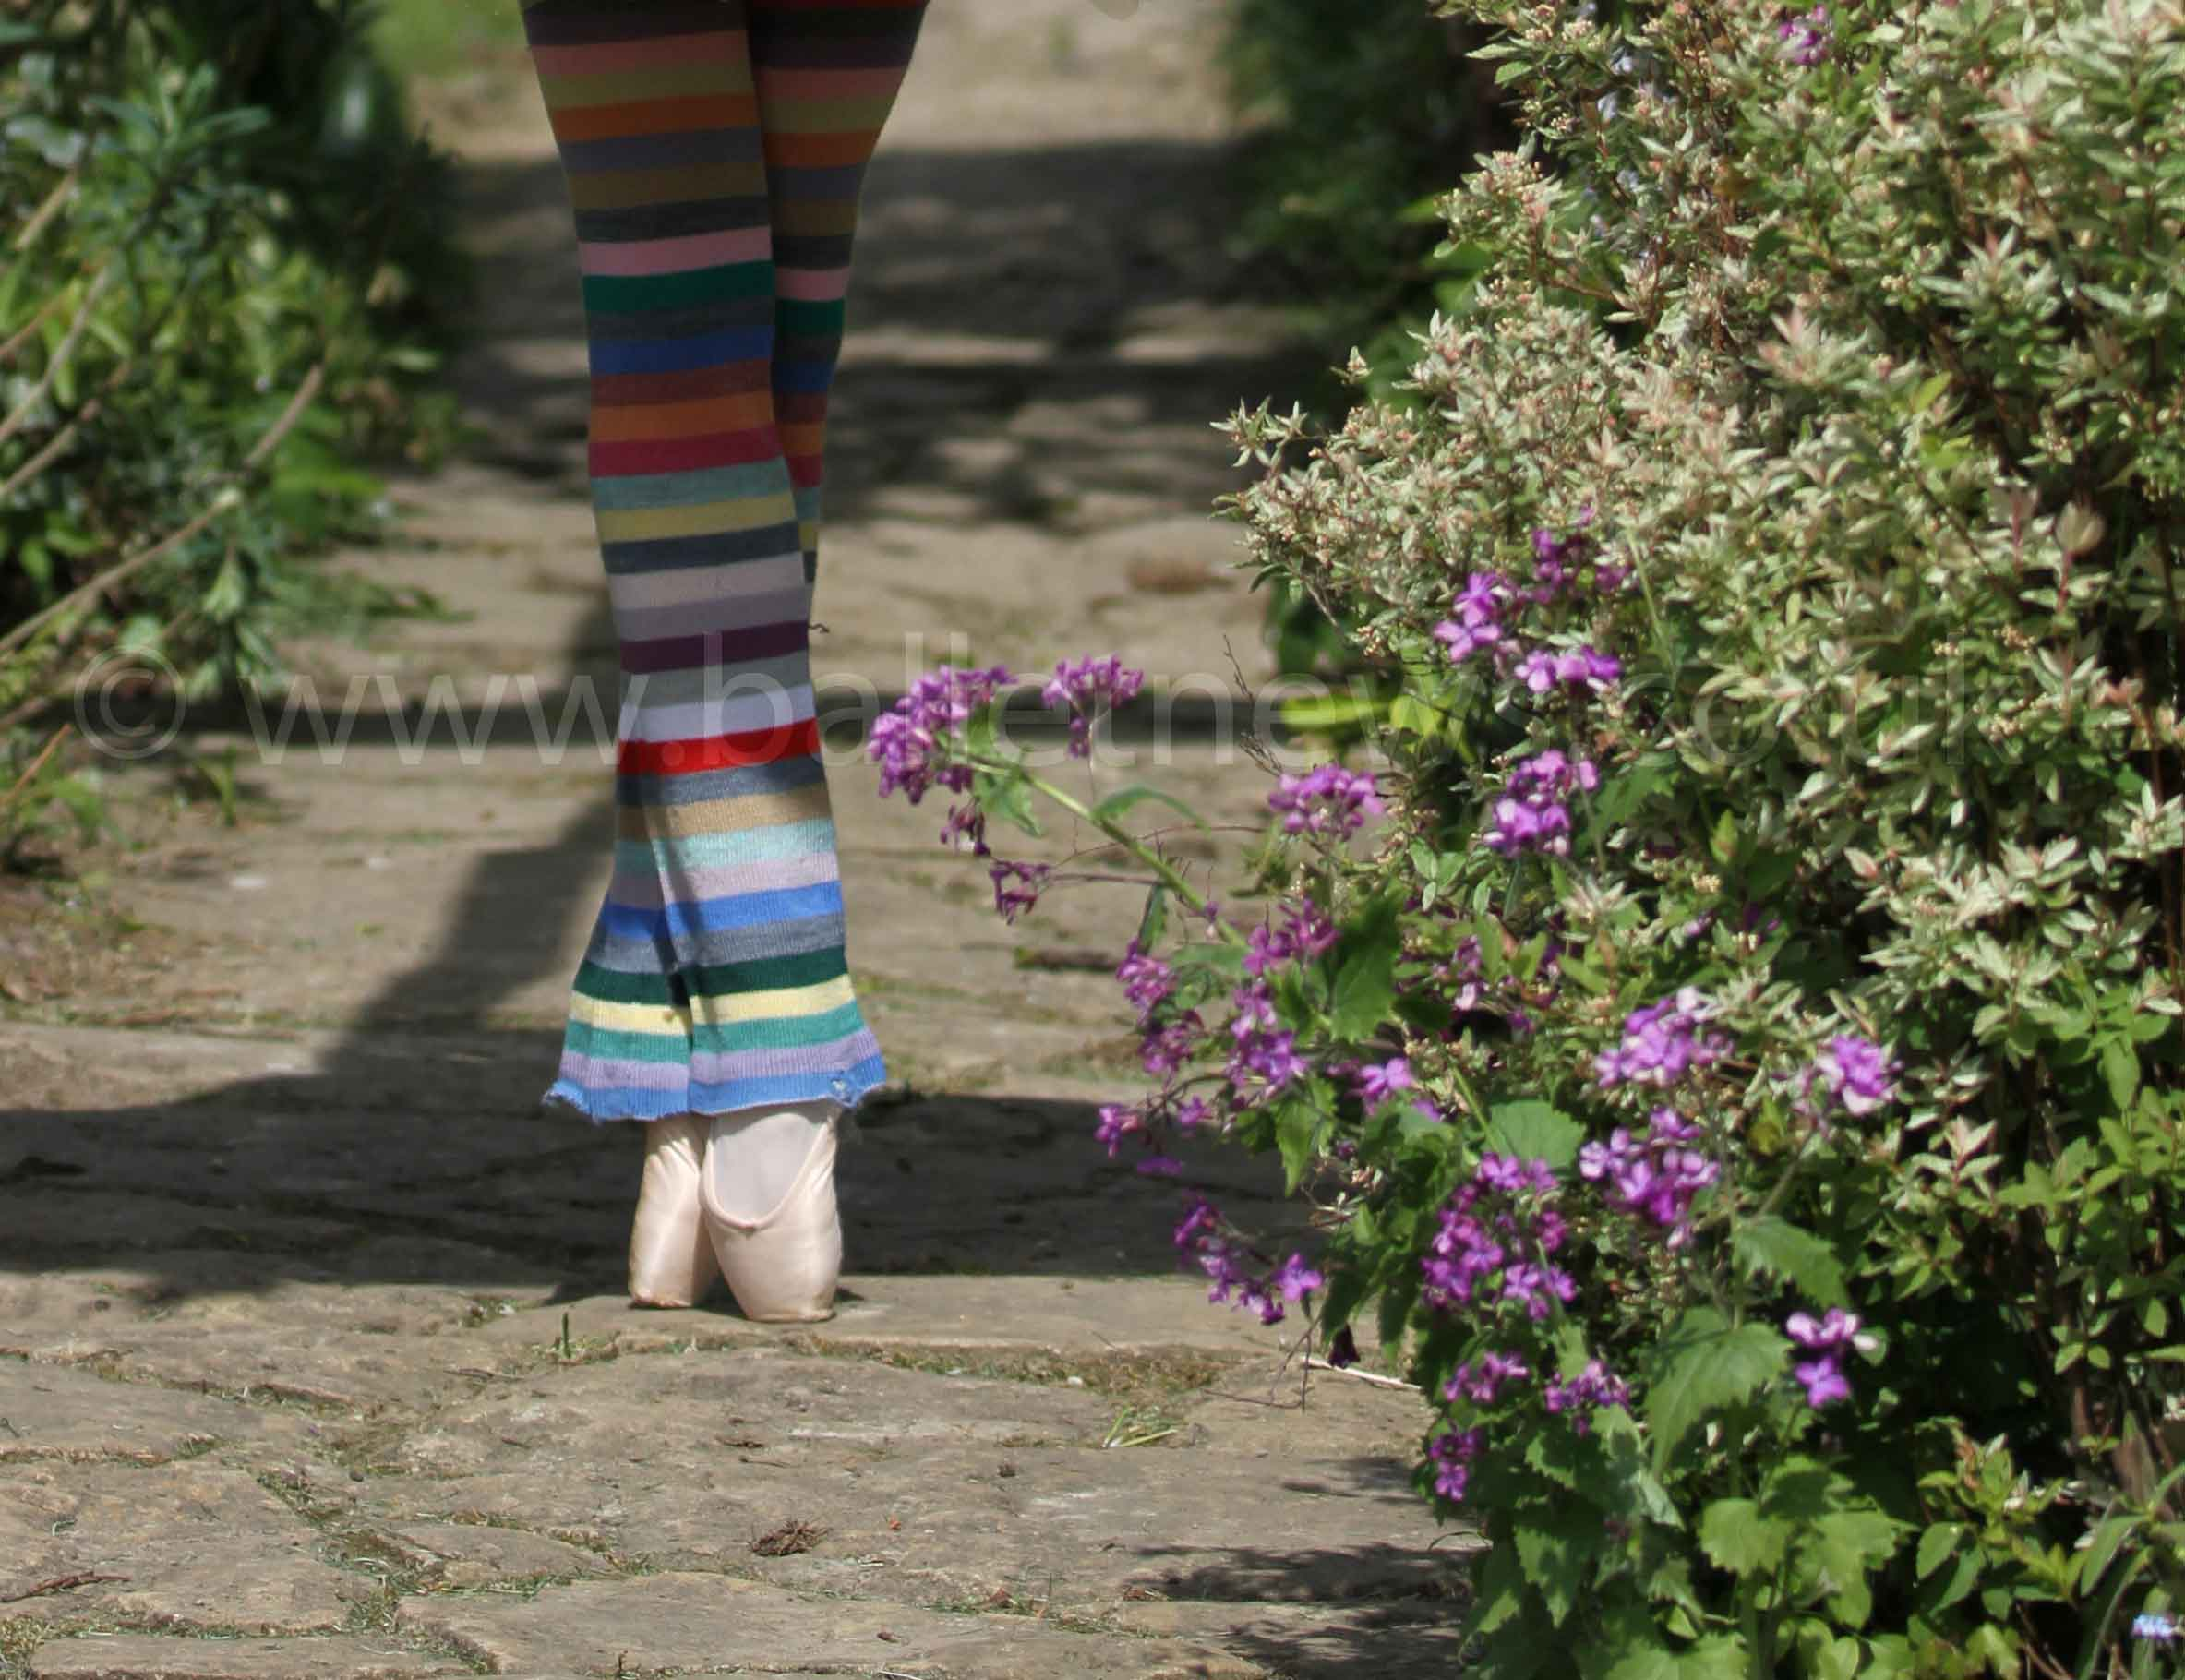 a ballet dancer wears stripy legwarmers and pointe shoes